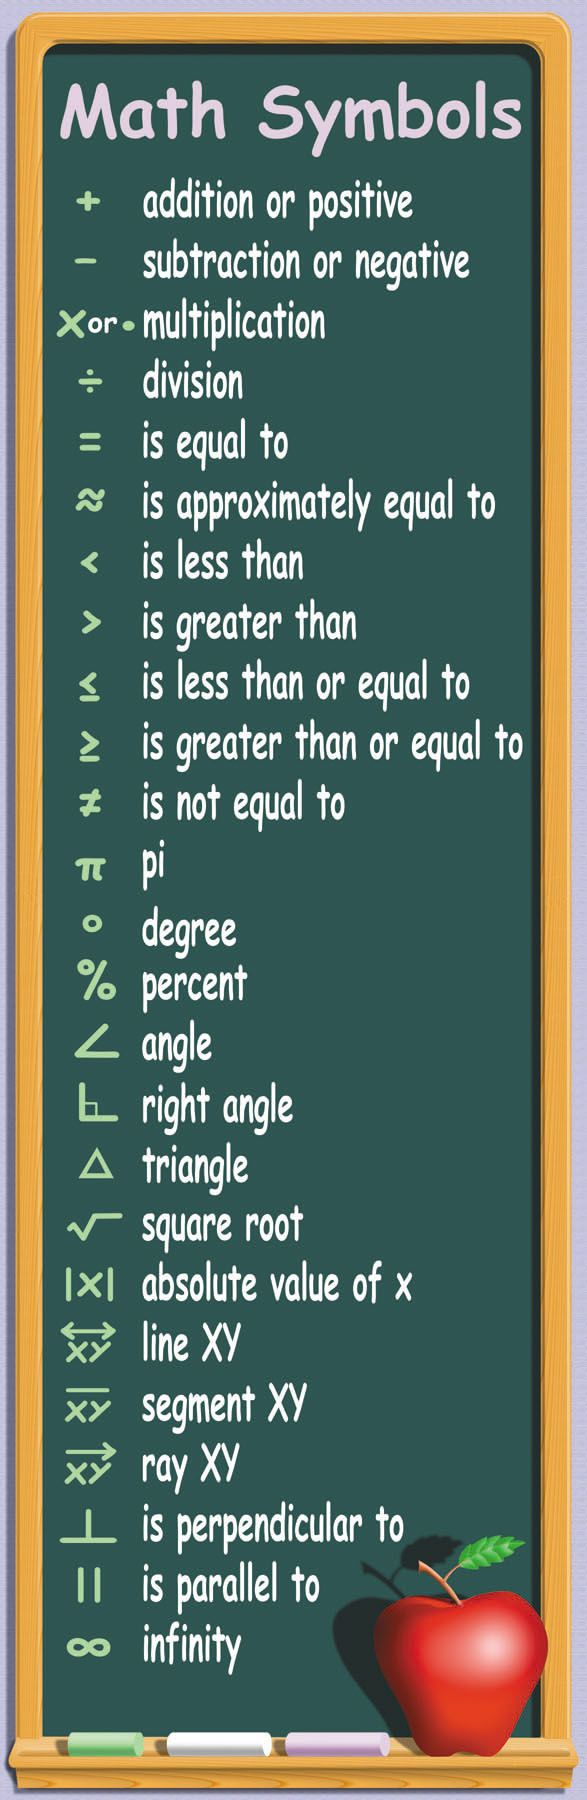 math classroom poster and banners | School | Classroom Decorations | Math Symbols Colossal Concept Poster ...